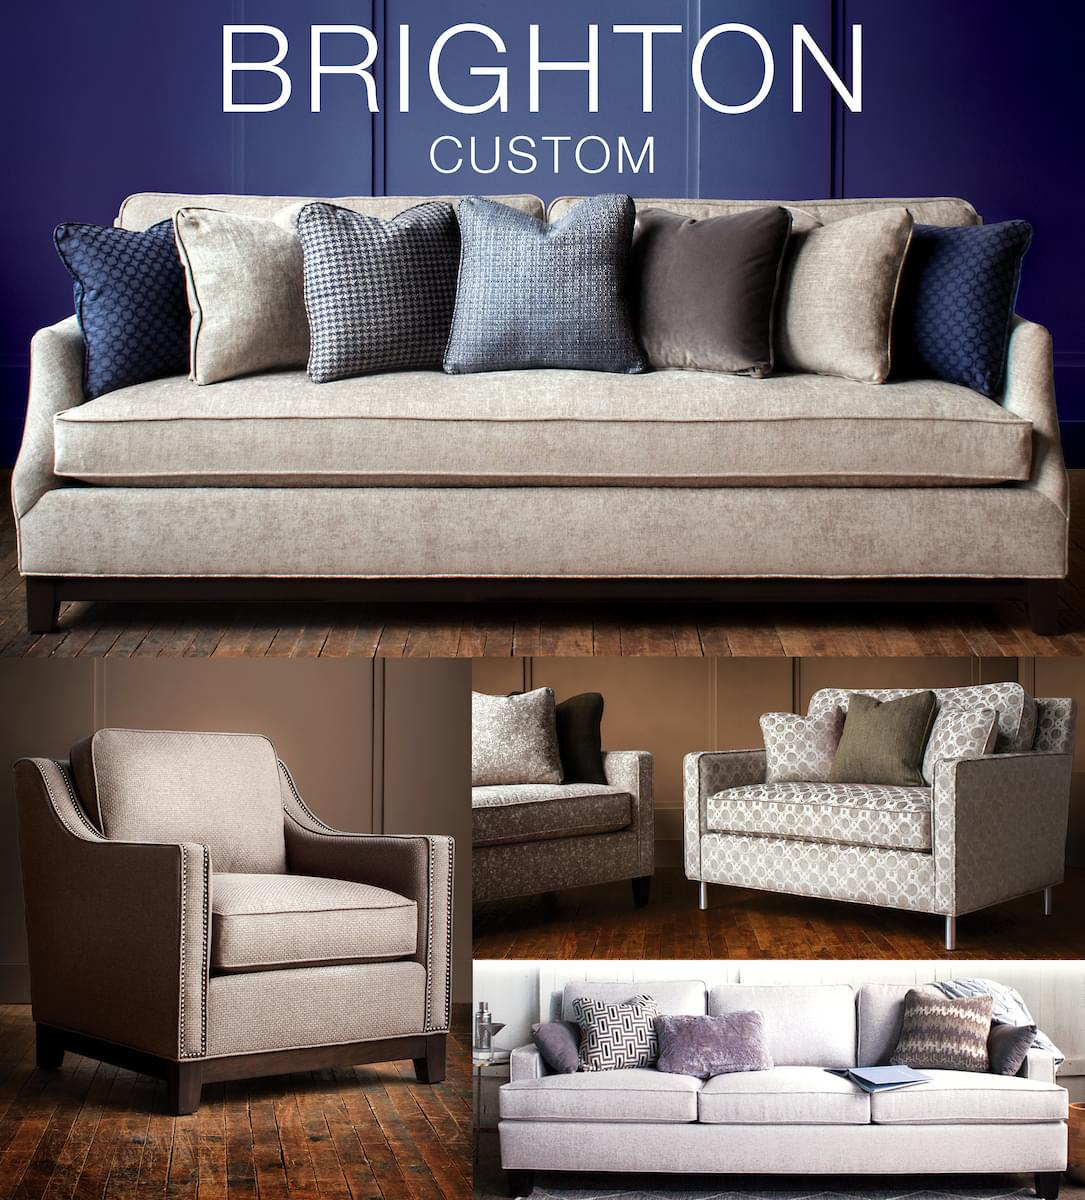 Introducing The Brighton Collection We Are Excited To Introduce Brighton,  The Newest Collection From Hallagan.